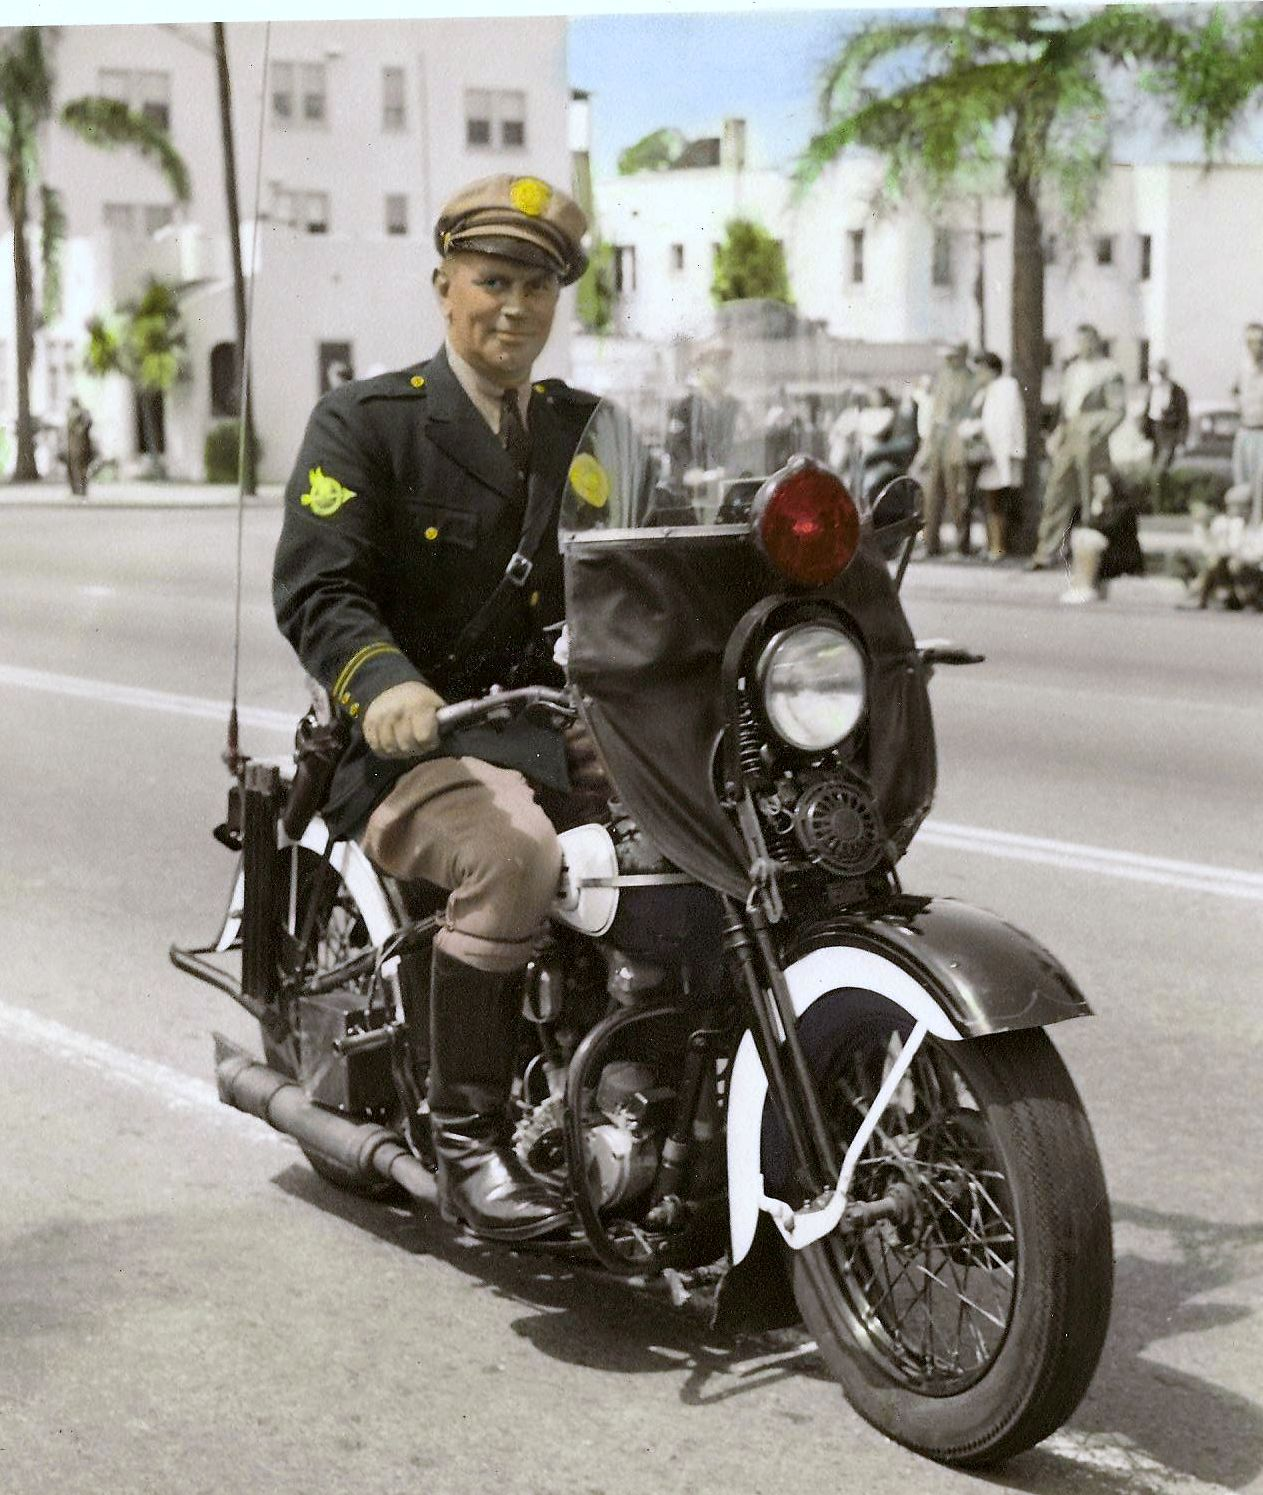 George B. Allman, 1947, San Diego Motocycle division of the San Diego Police Depatment.  Parade in Balboa Park, San Diego, California.